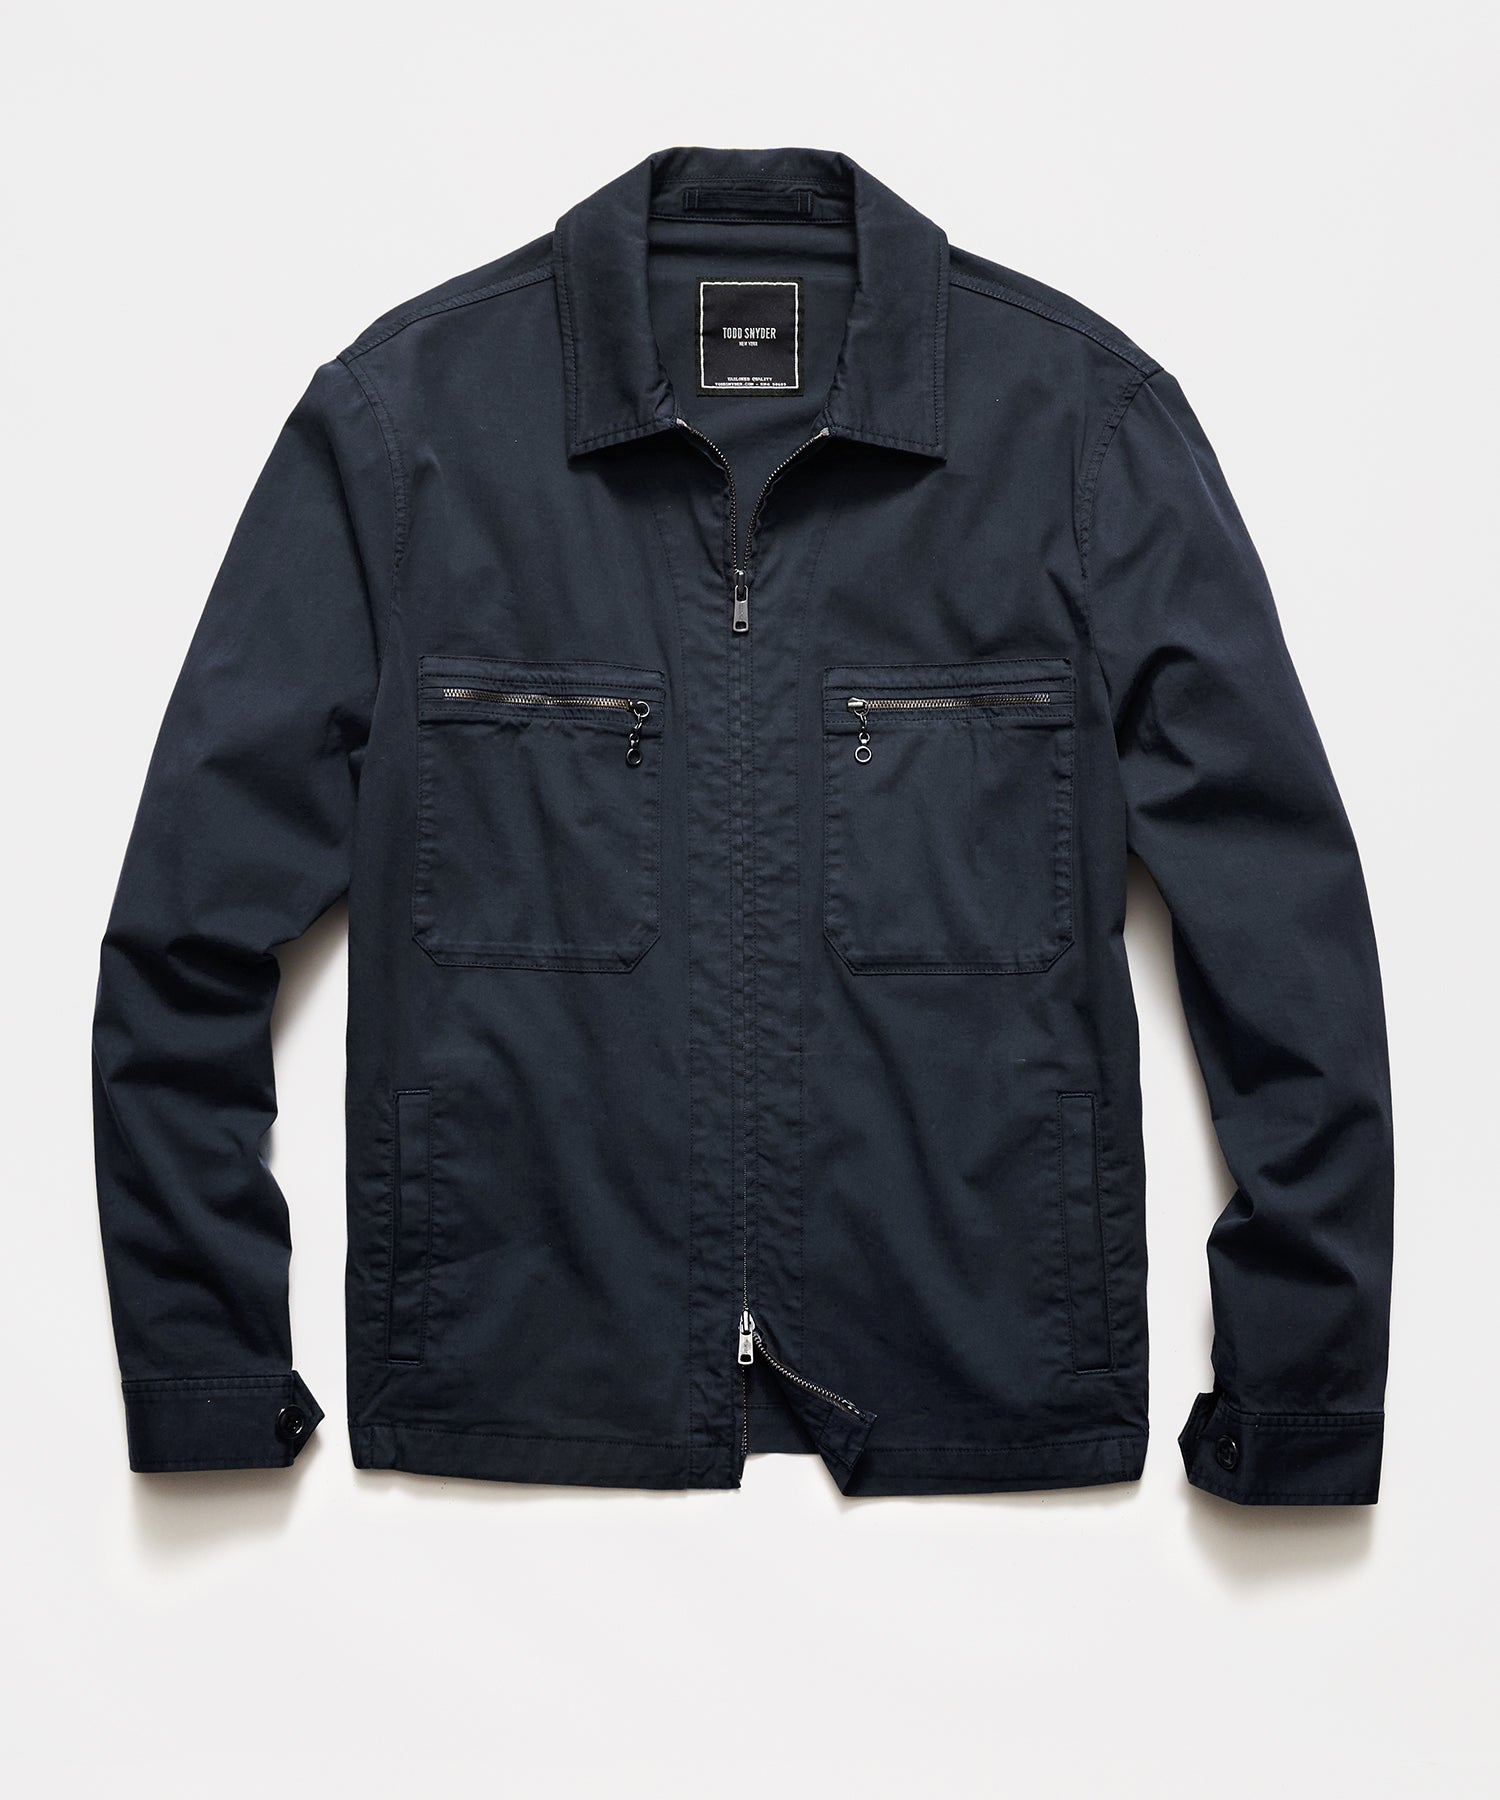 Italian Mechanic Jacket in Blue